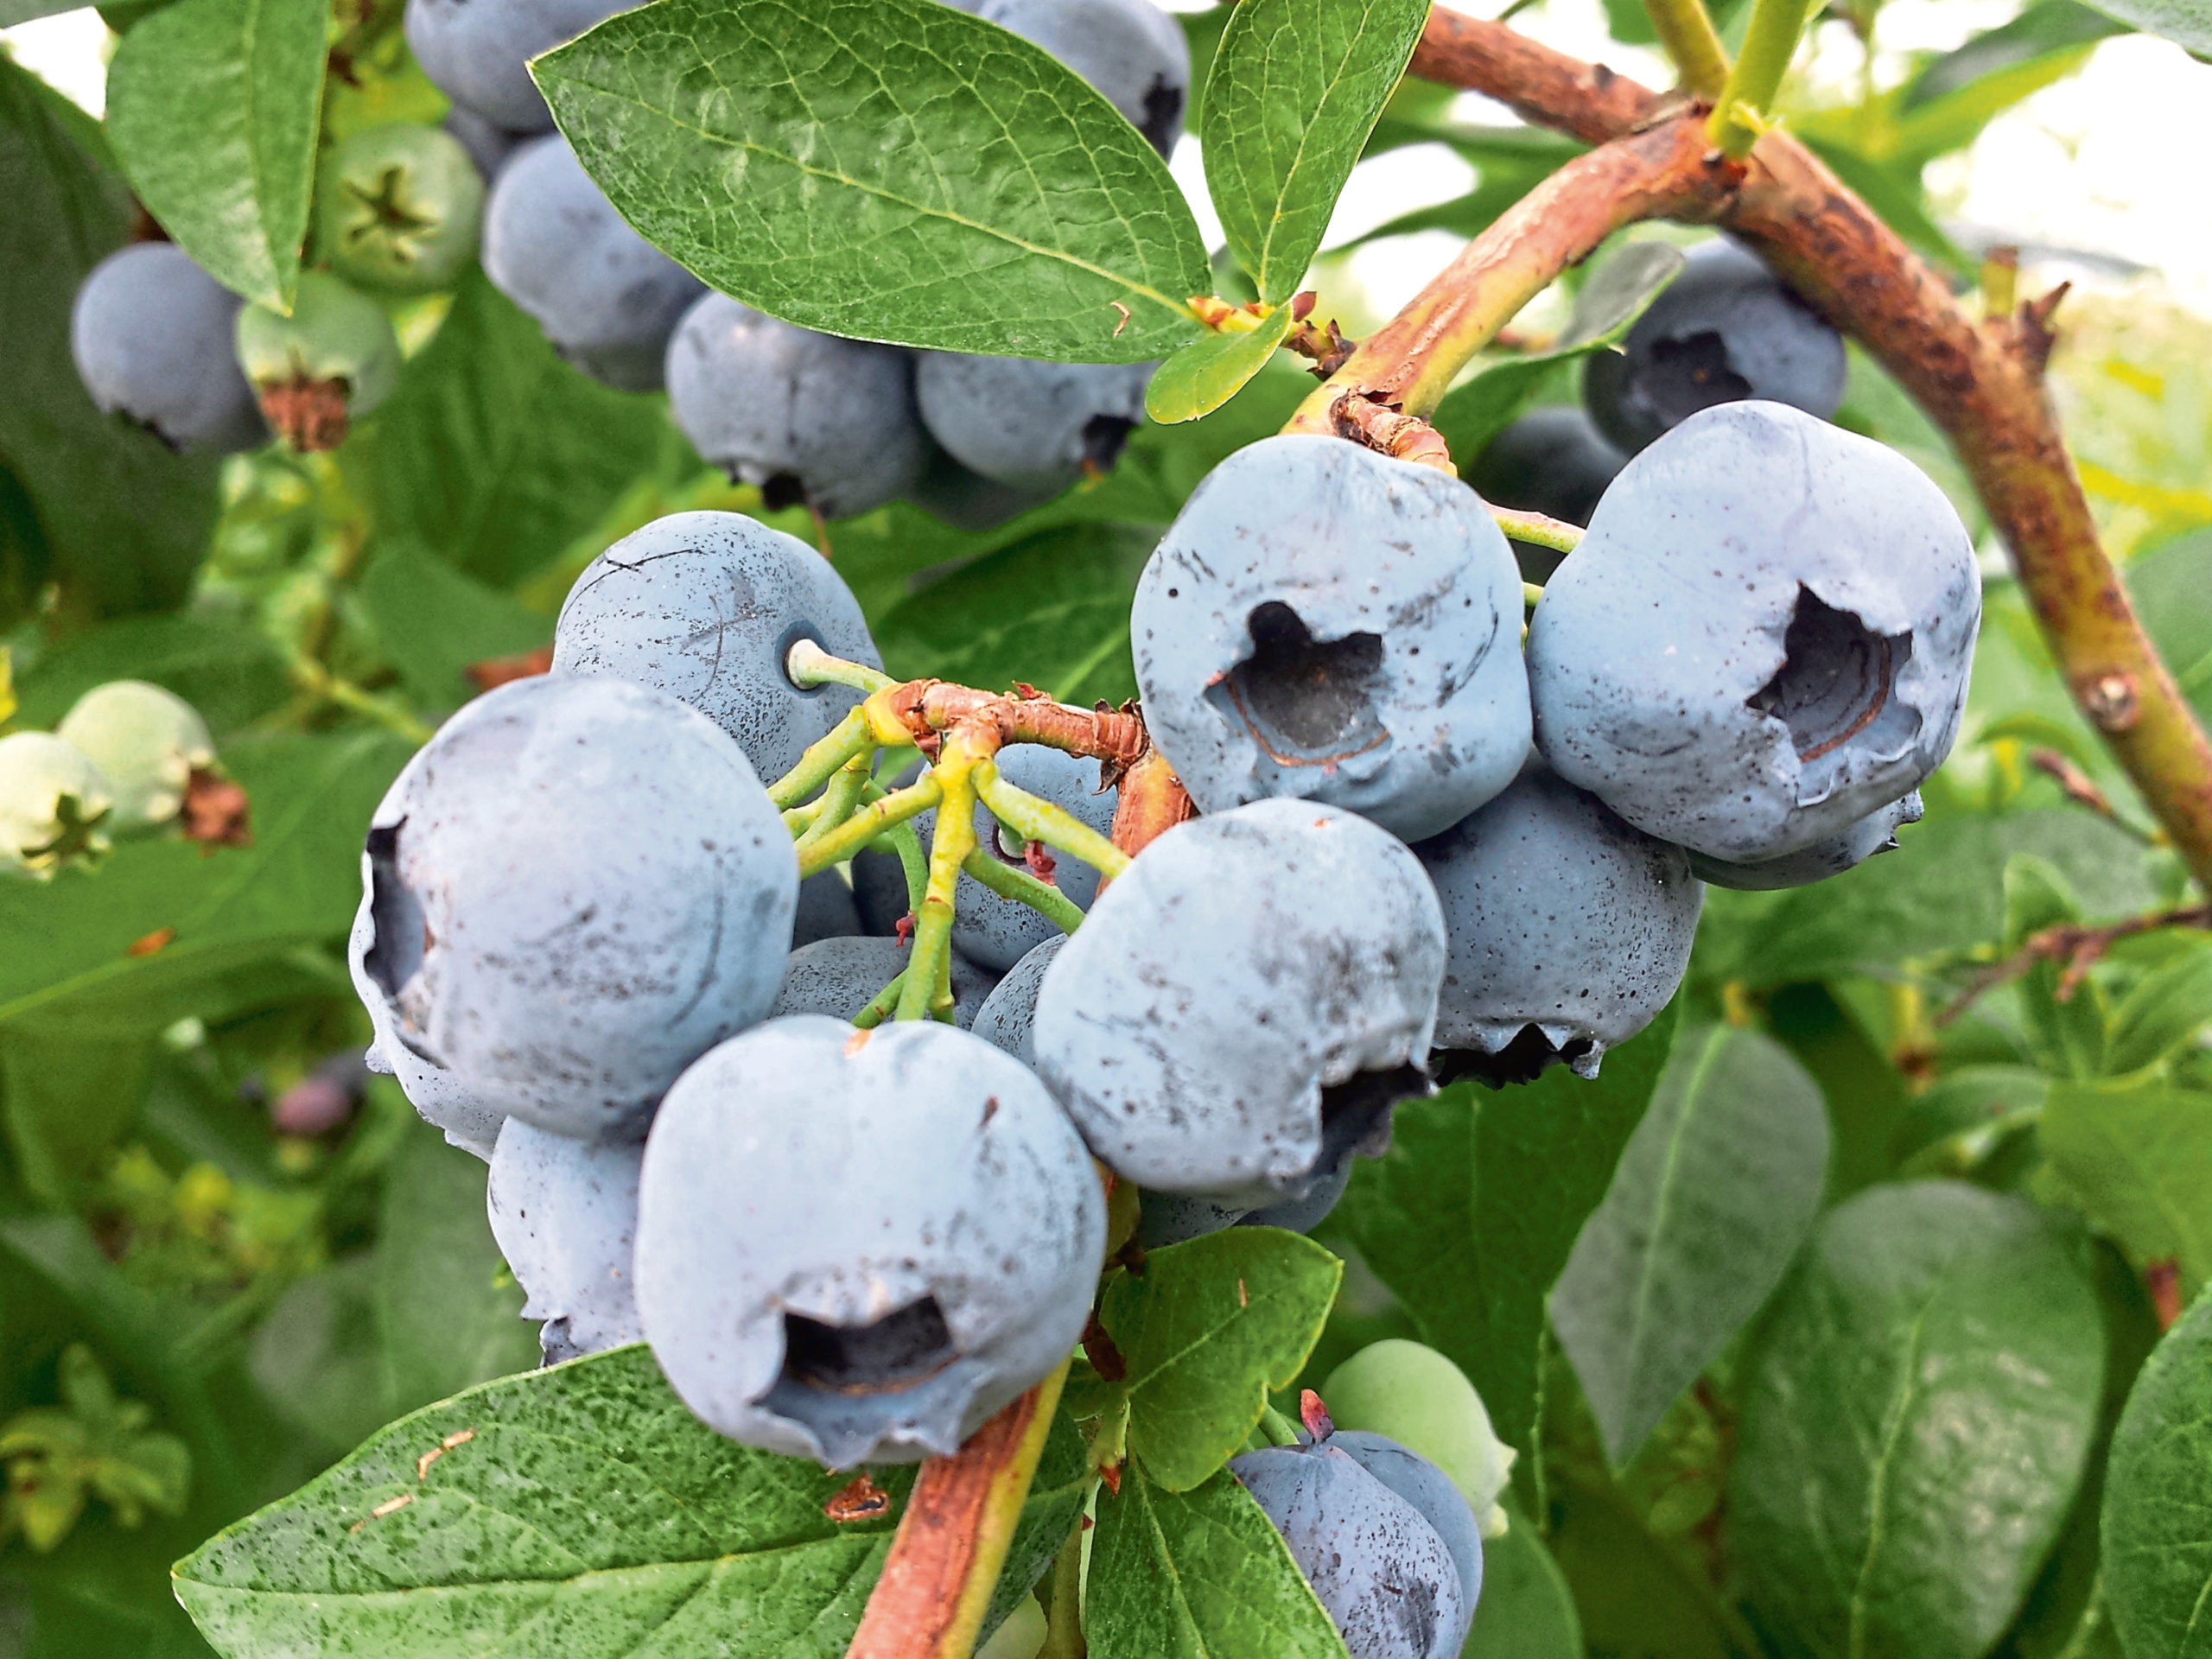 Scottish blueberry growers face competition from their counterparts in Peru, whose products are on the shelves all the year round.